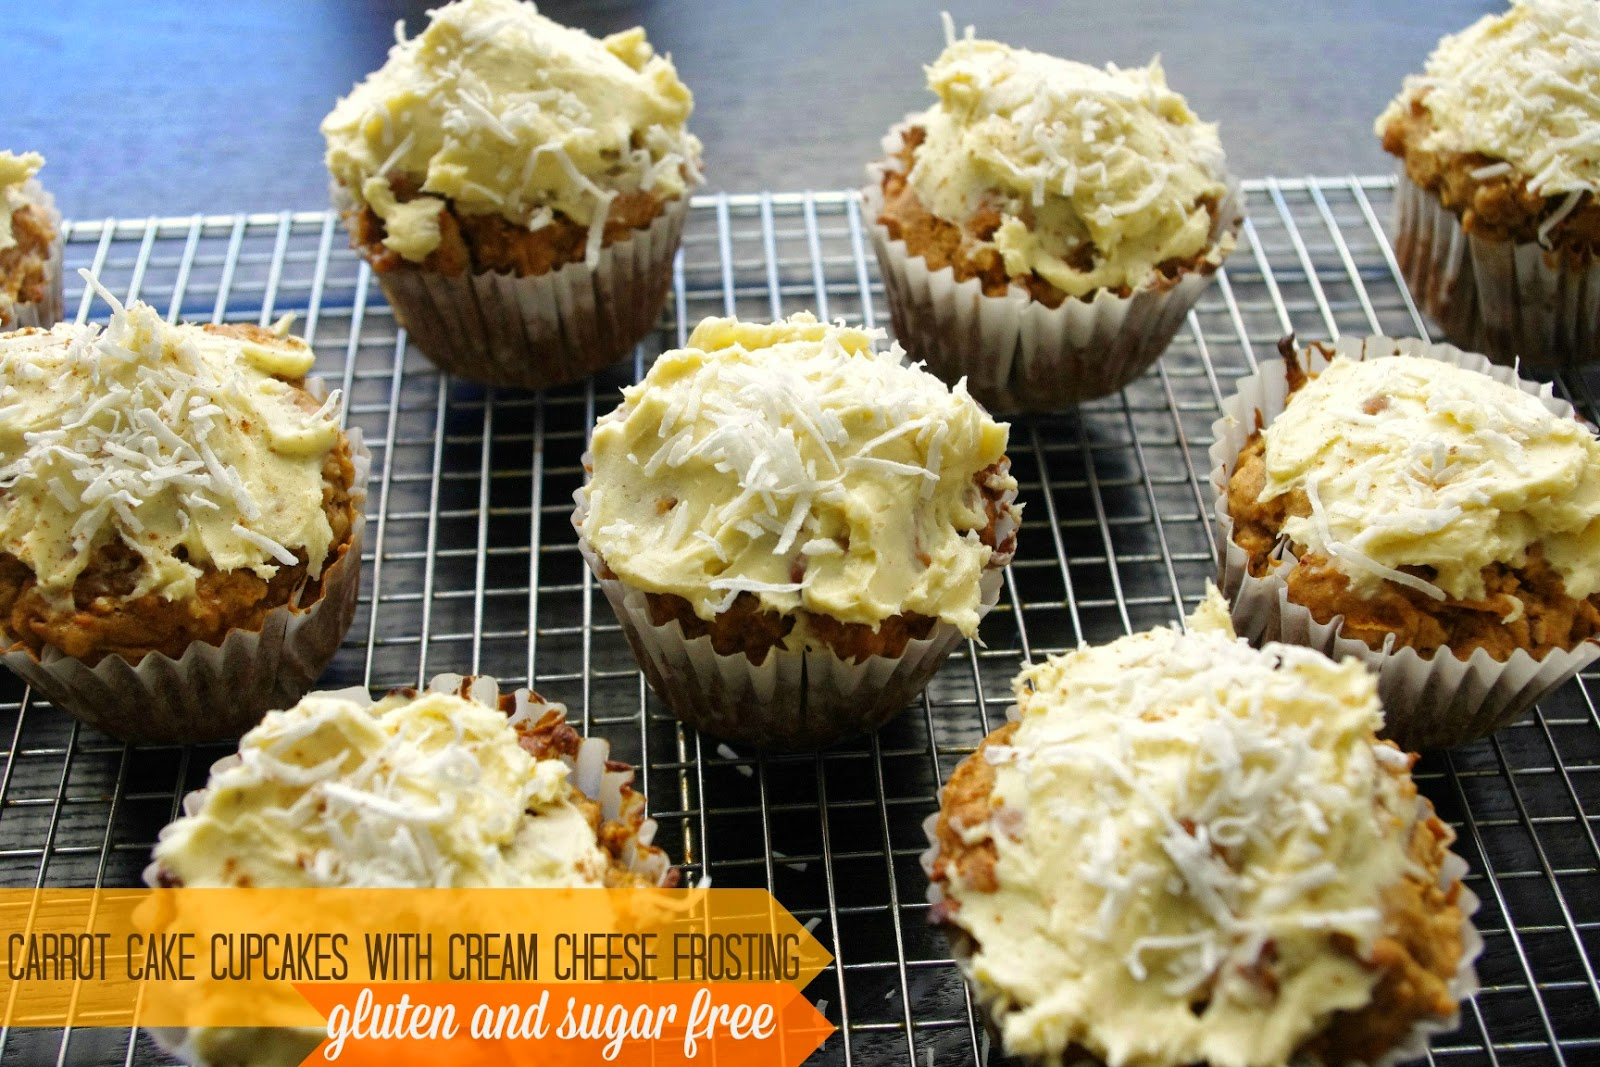 Carrot cake cupcakes with cream cheese frosting sugar and gluten free